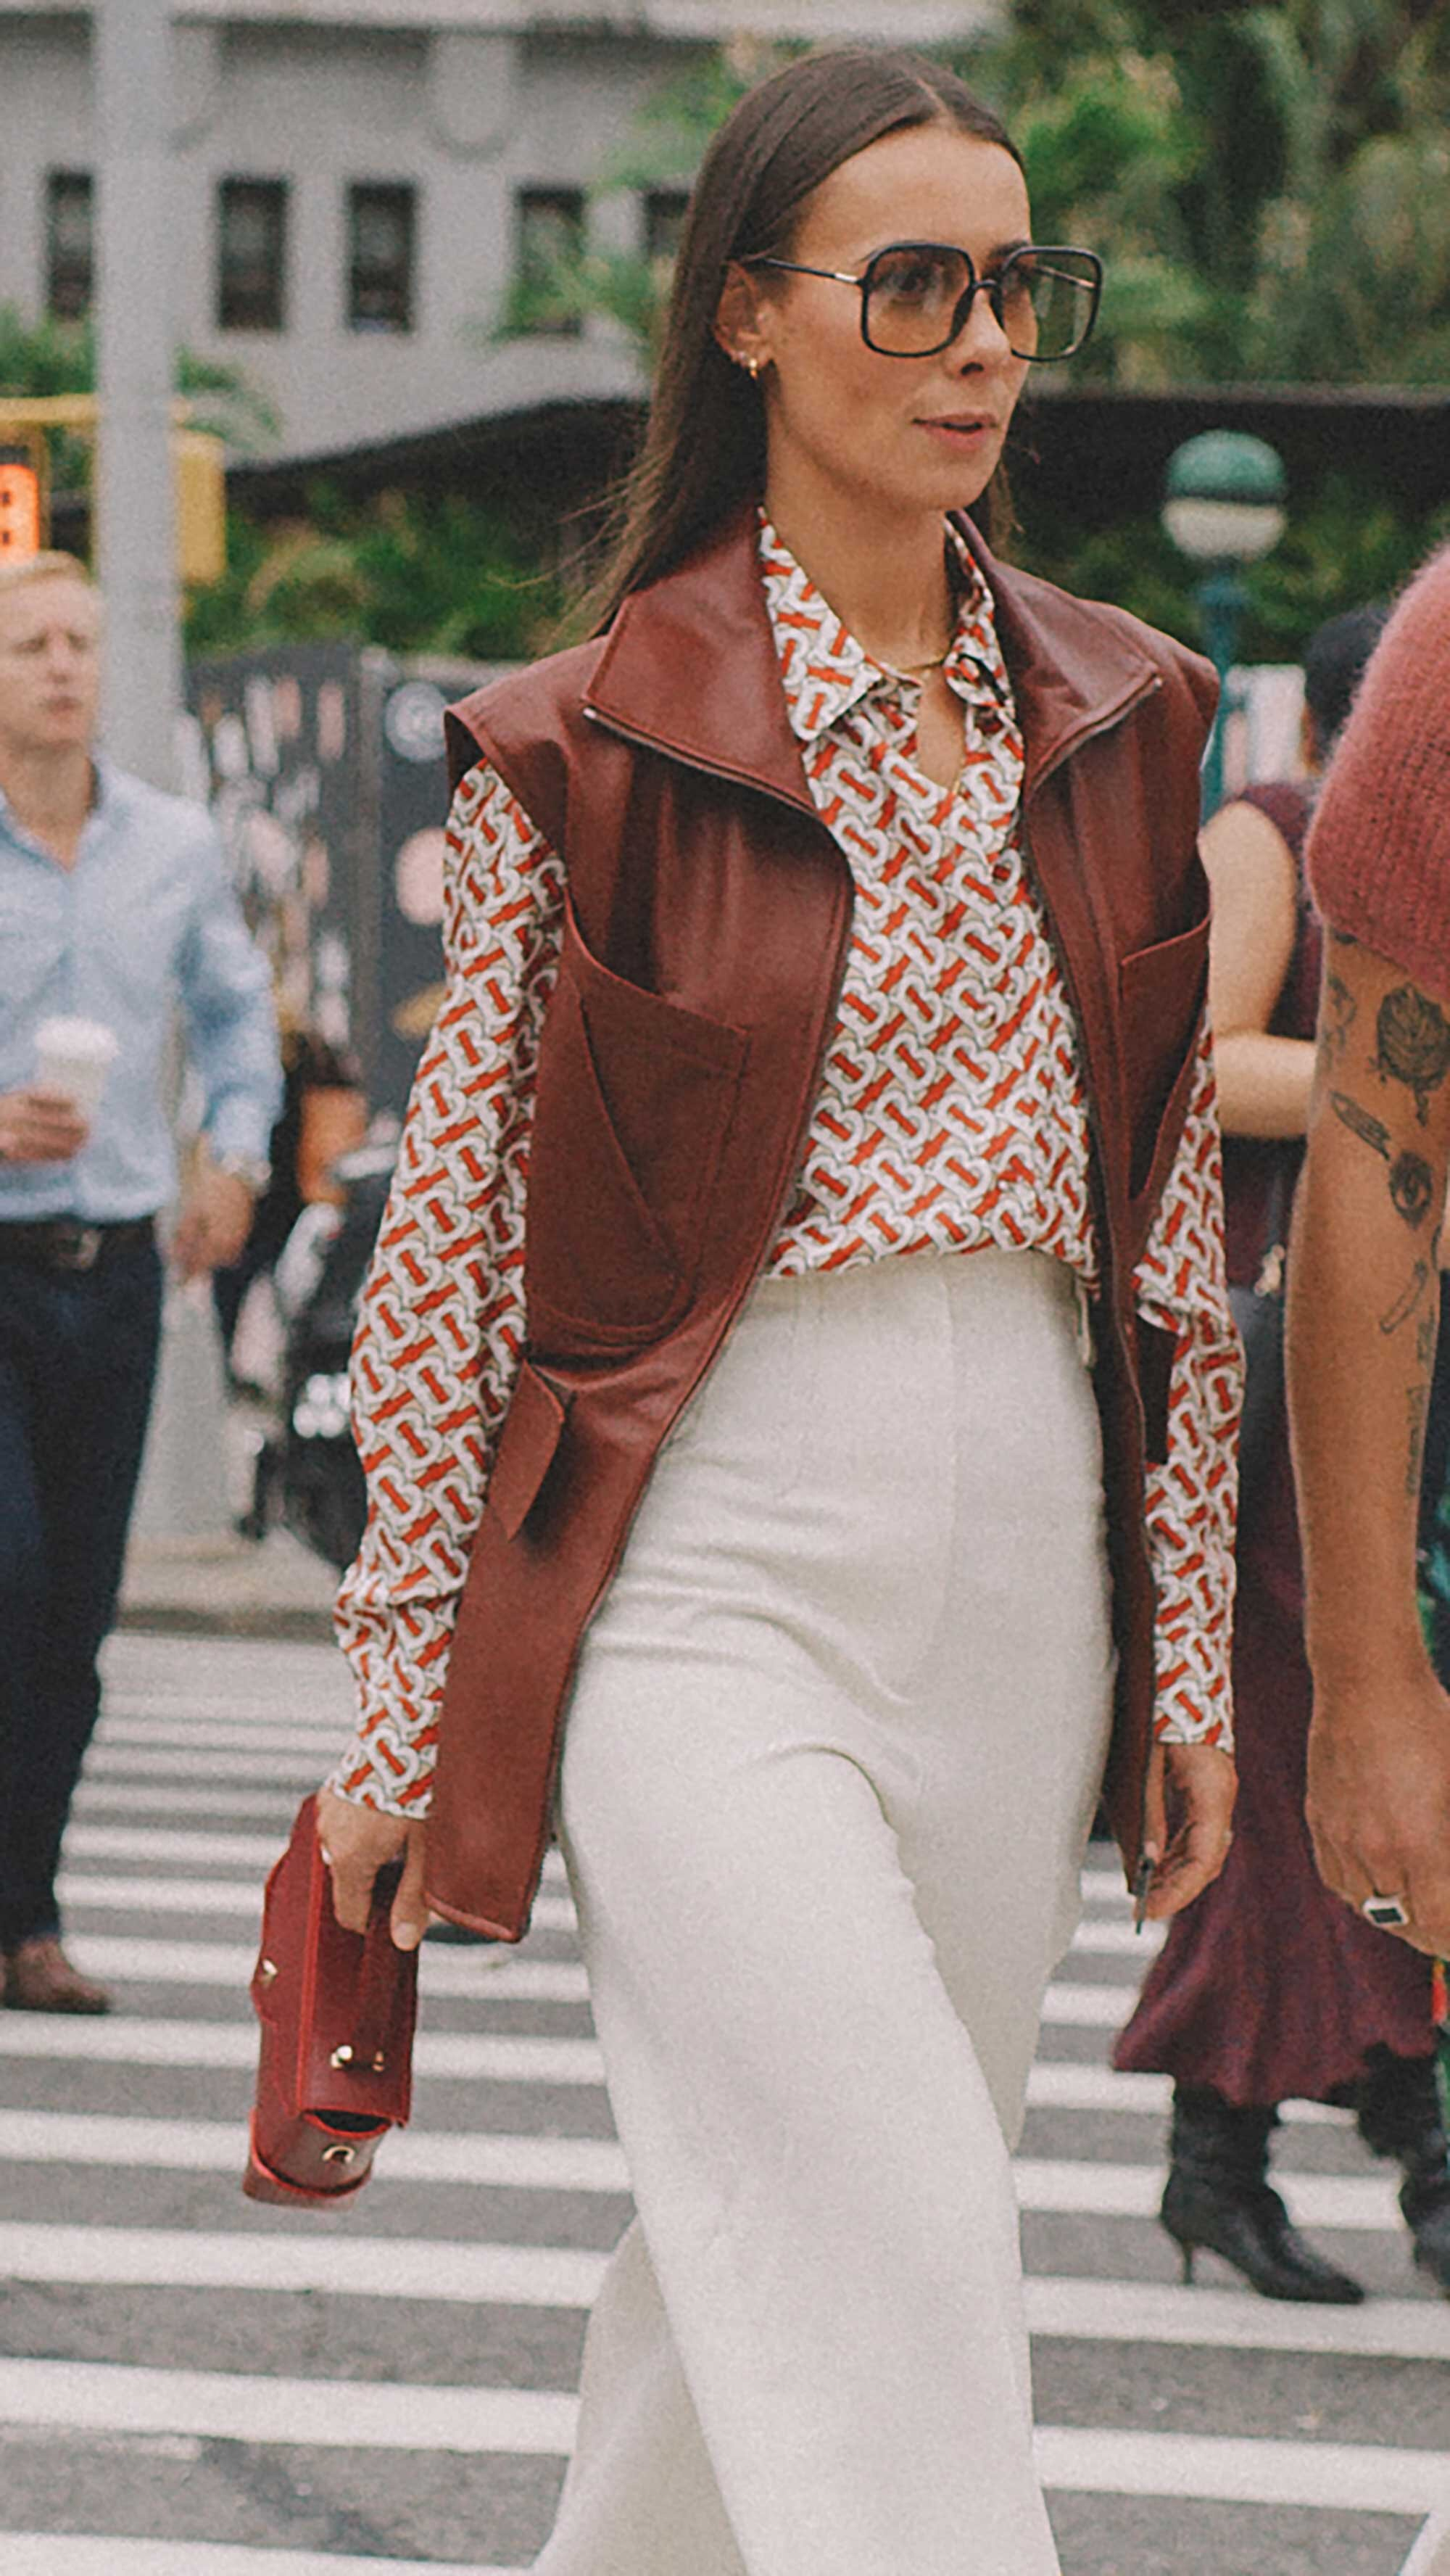 Best outfits of New York Fashion Week street style -8.jpg